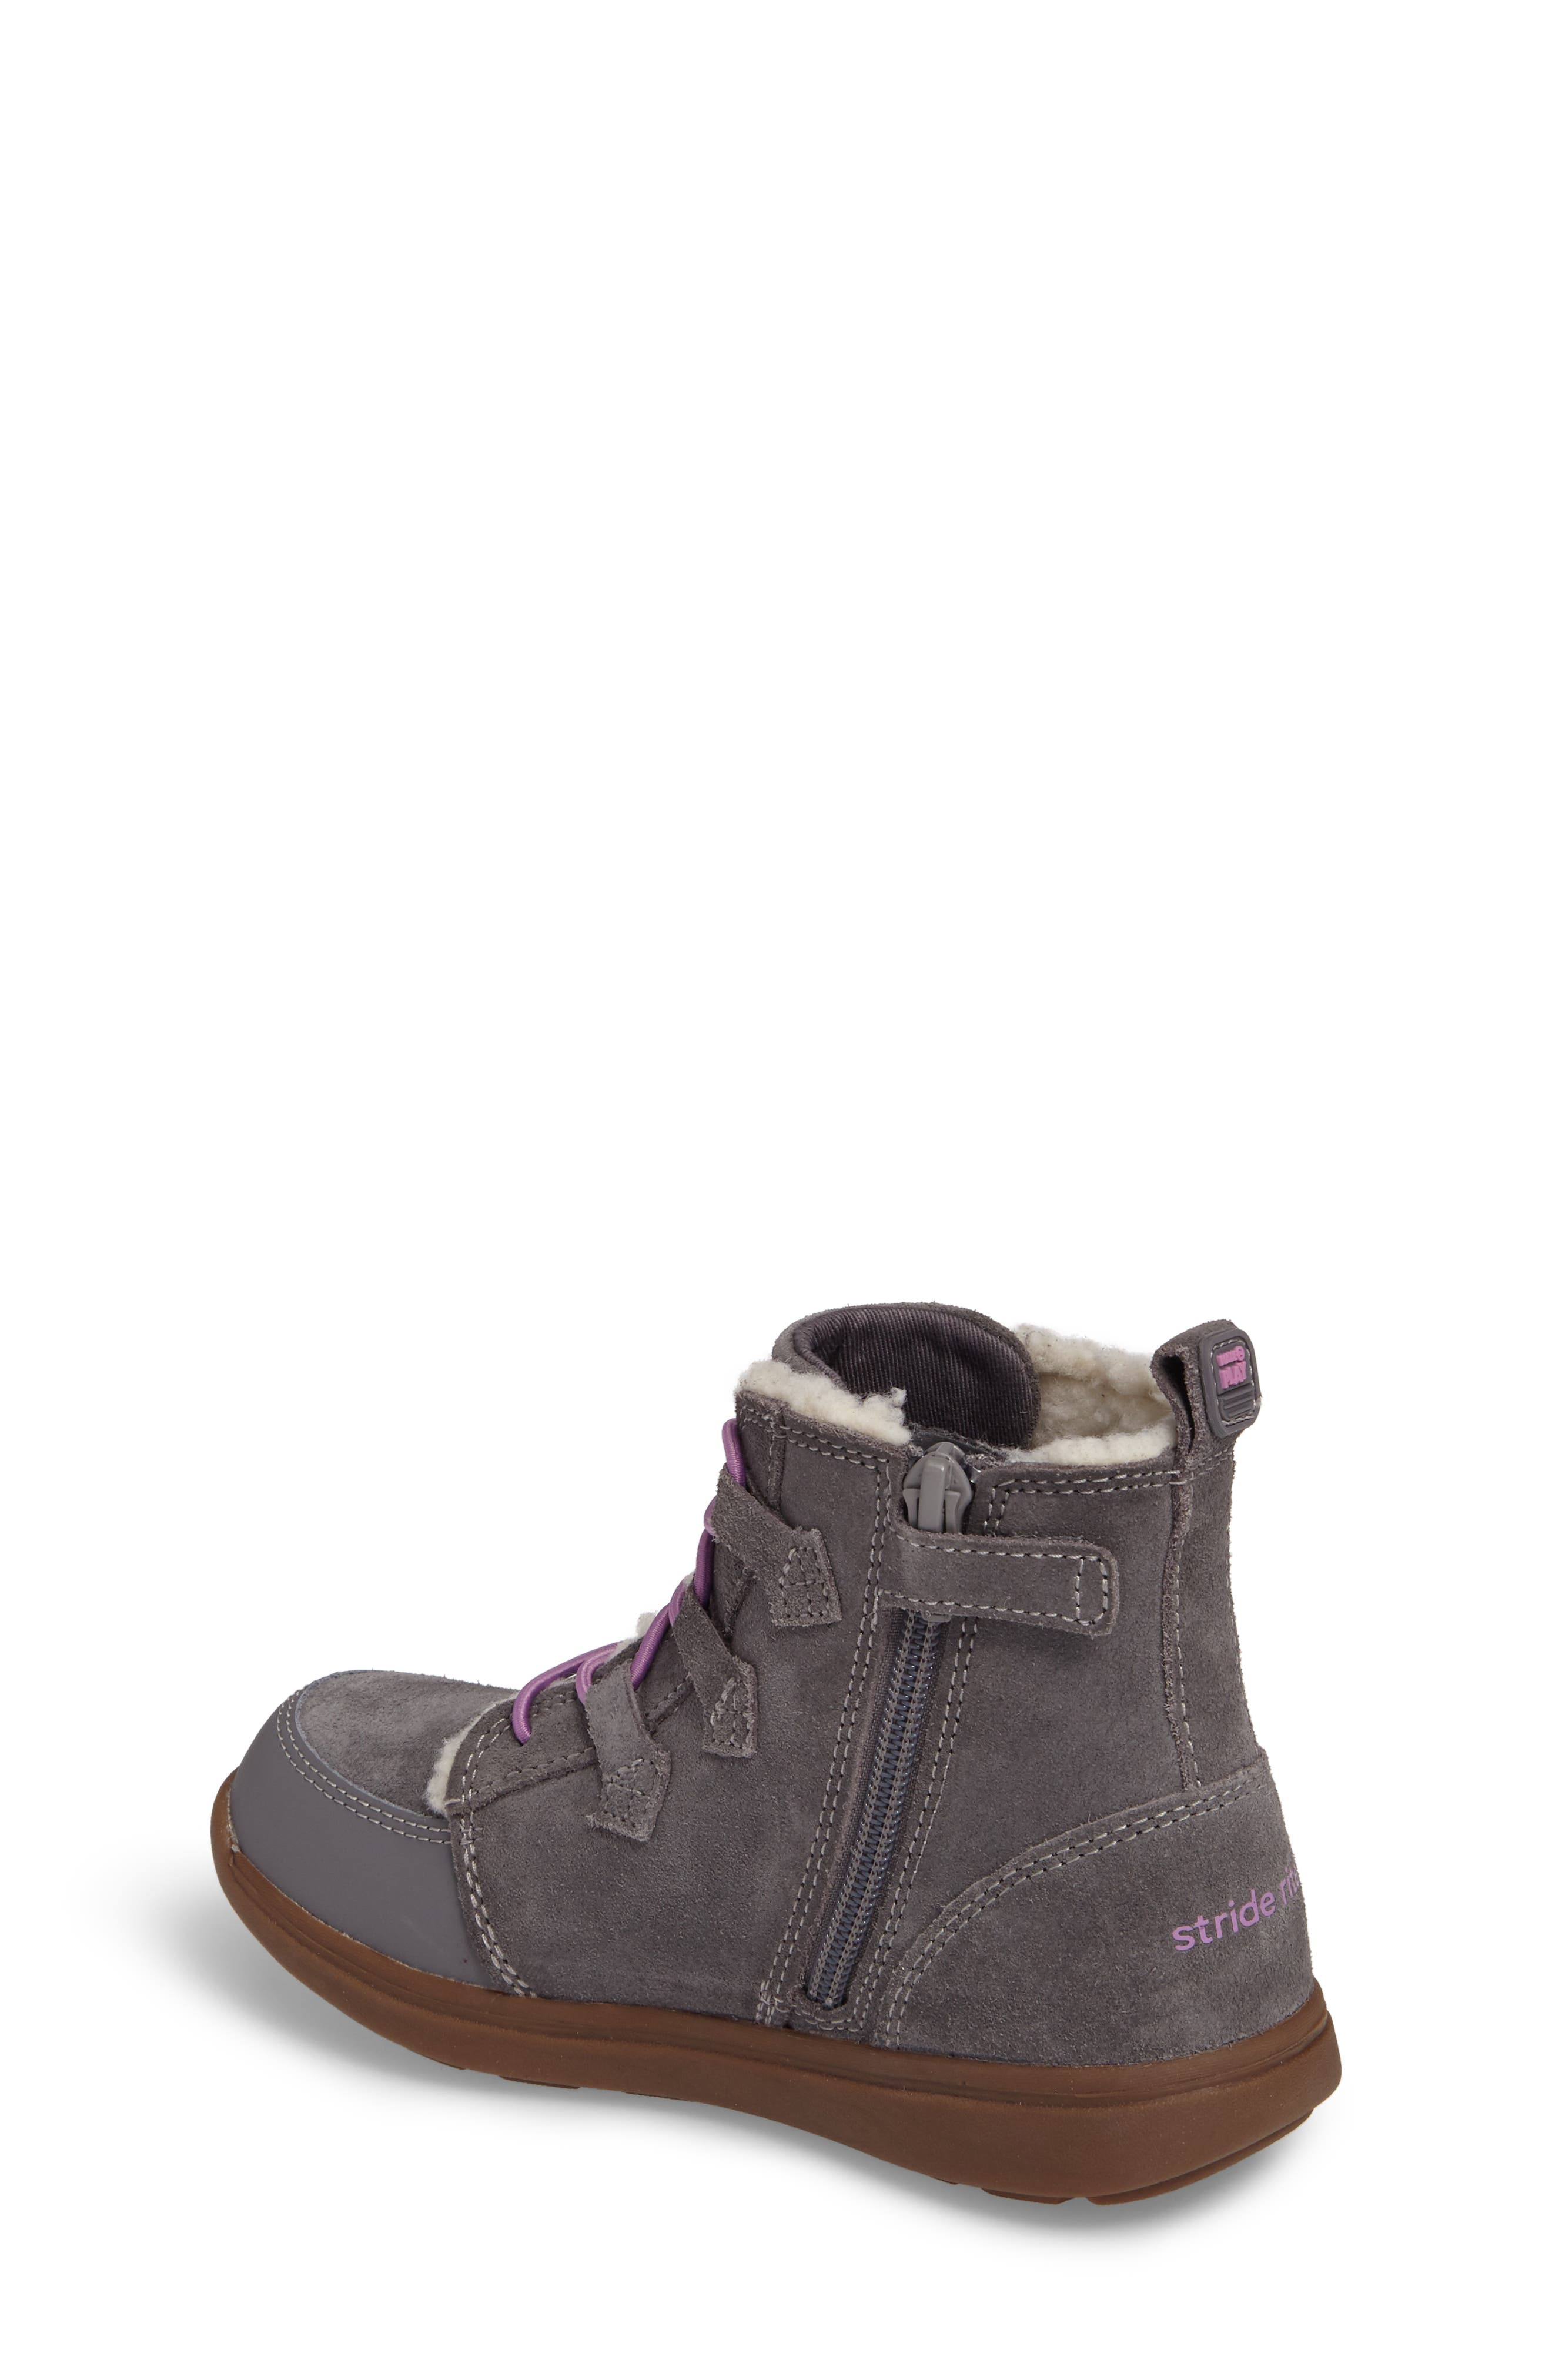 Alternate Image 2  - Stride Rite Made2Play® Washable Faux Fur Heather Bootie (Toddler & Little Kid)